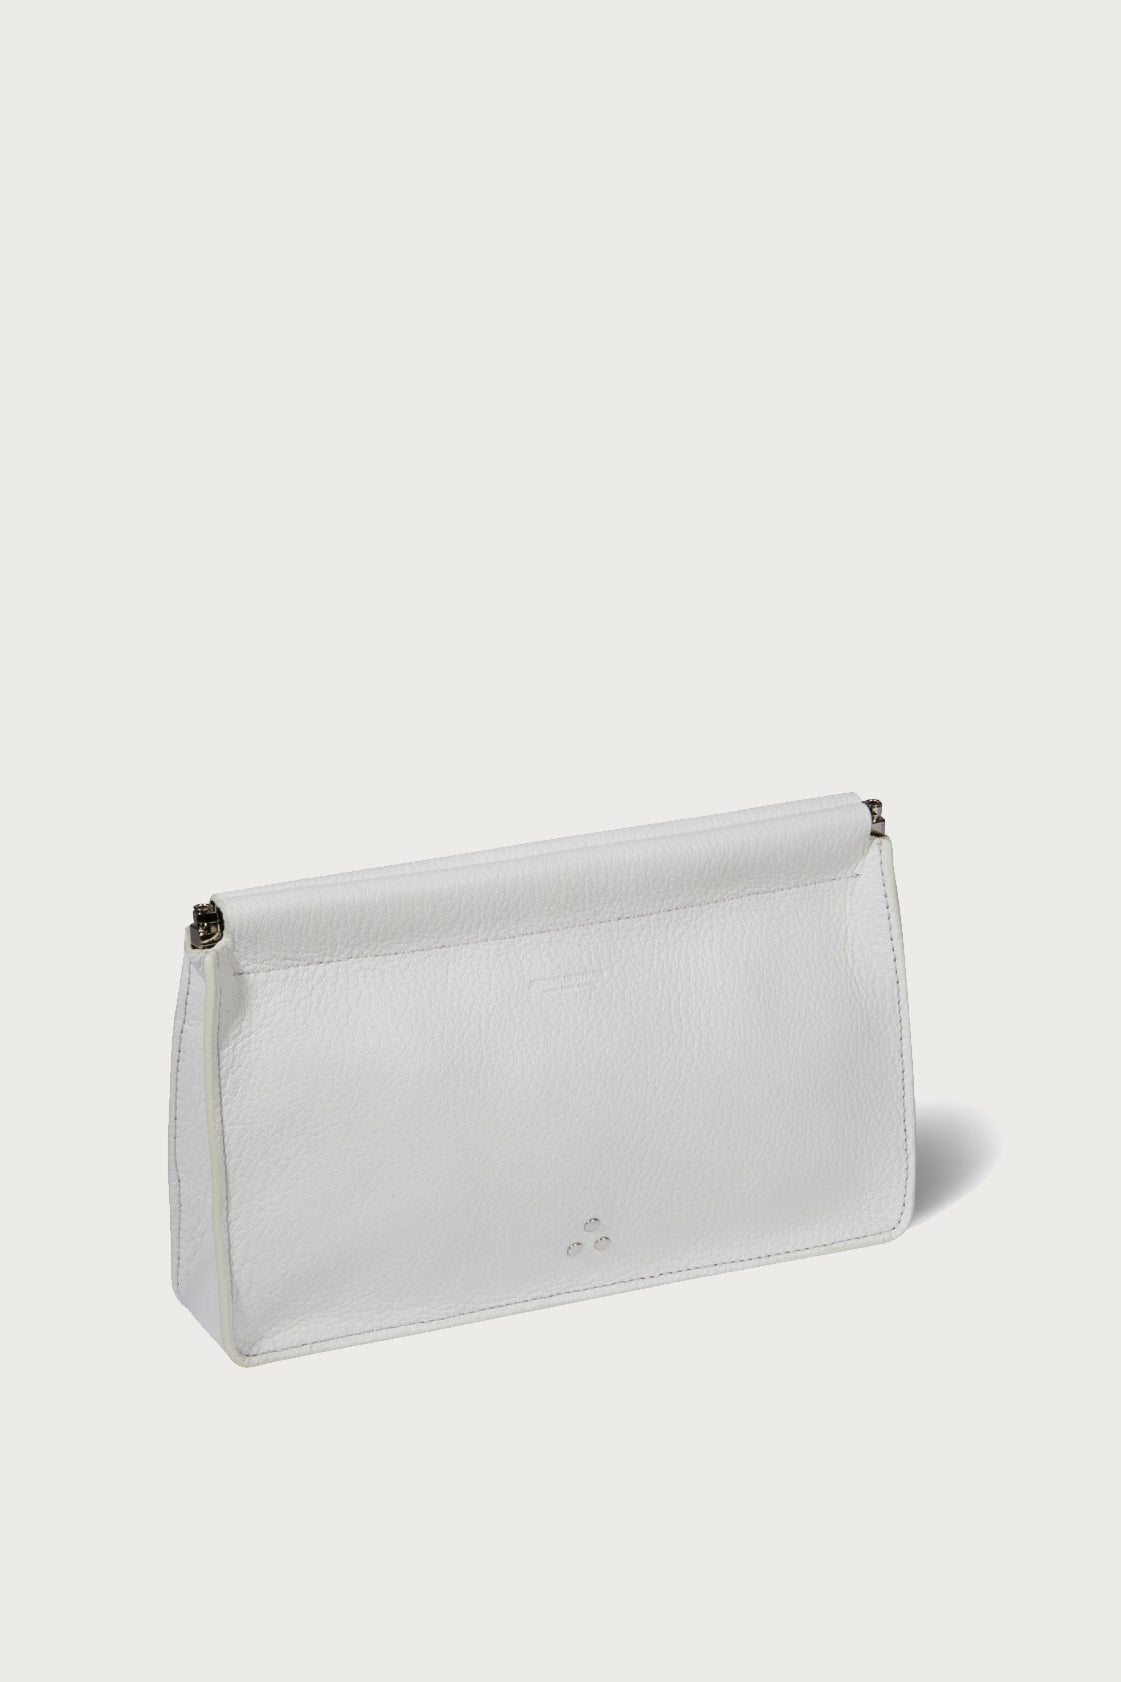 Jerome Dreyfuss Clic Clac Clutch in Blanc - Vert & Vogue